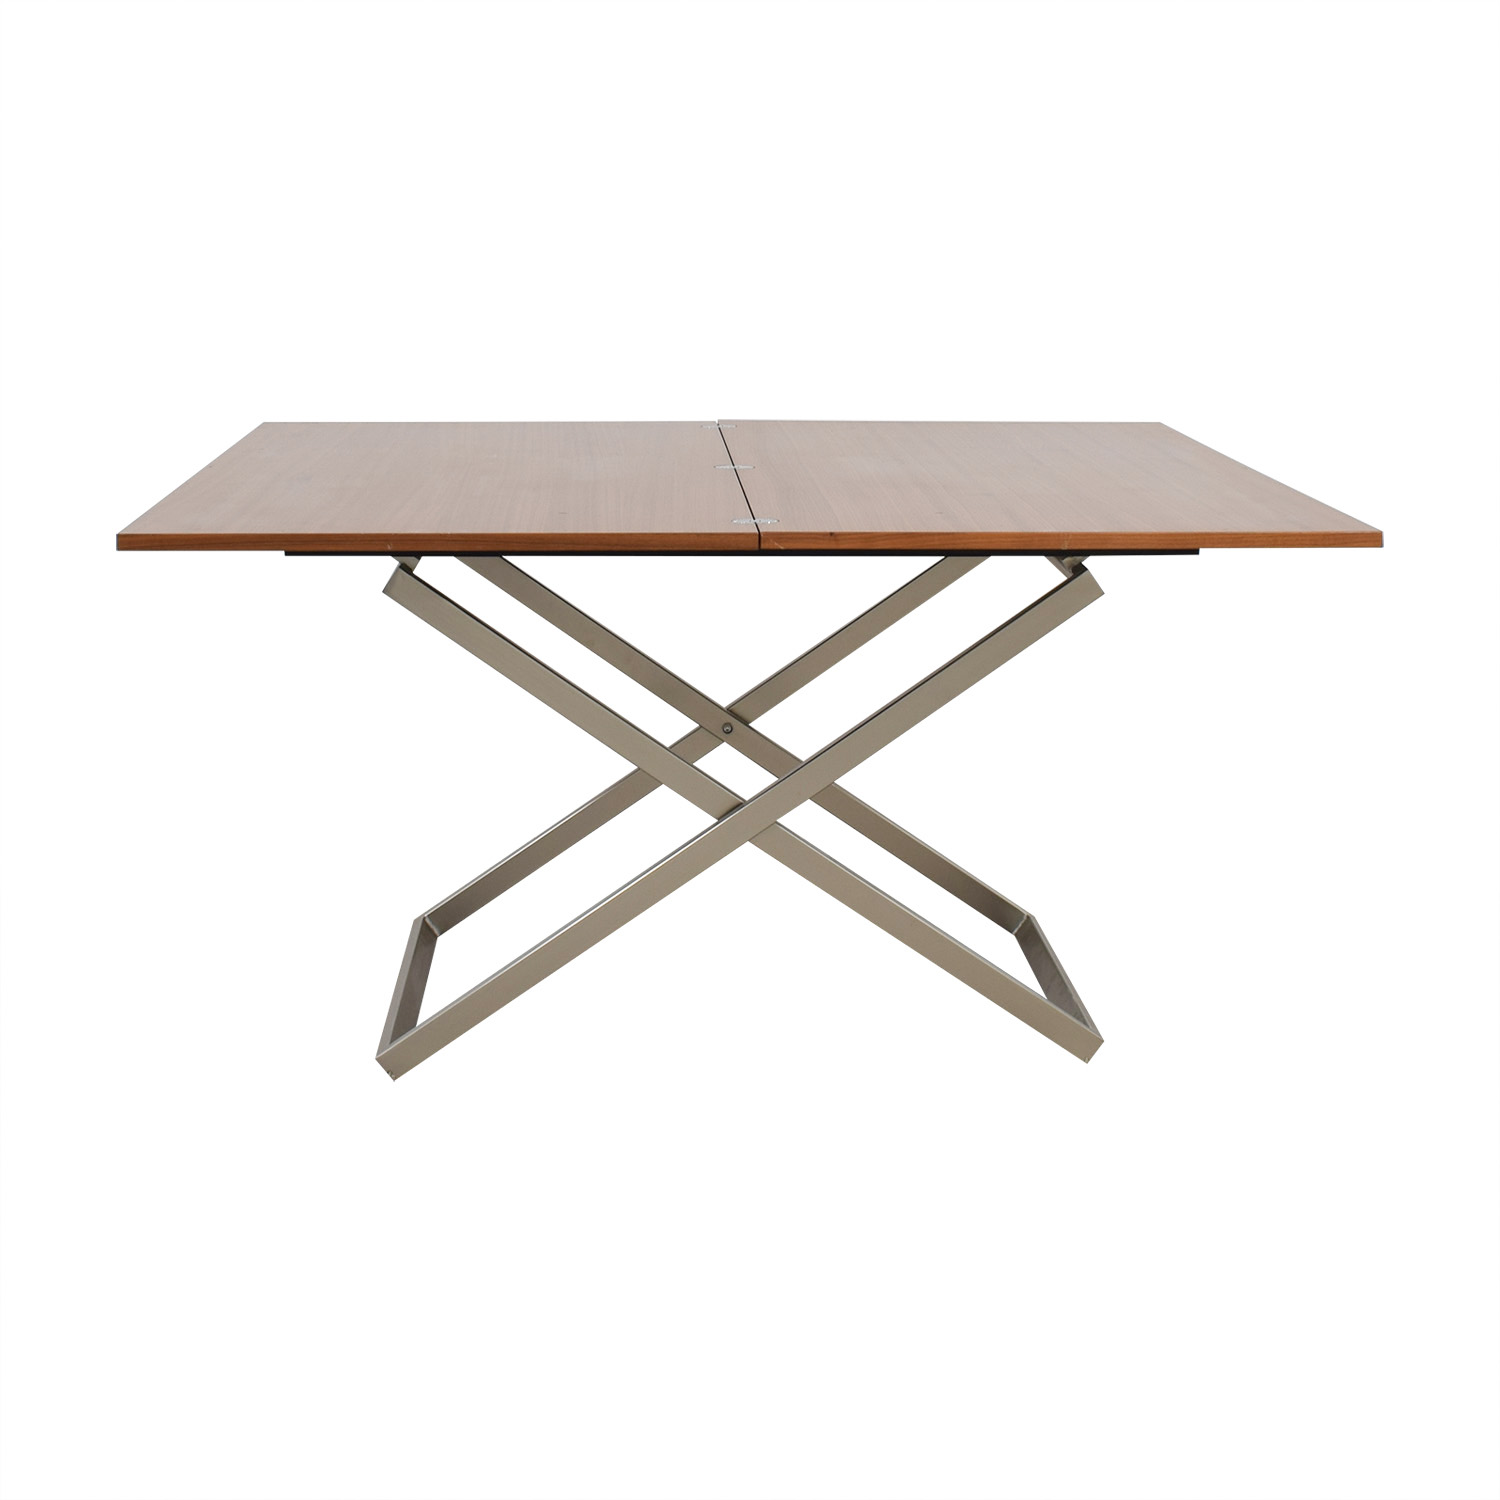 shop Bo Concept Rubi Adjustable Table from Coffee to Dining Bo Concept